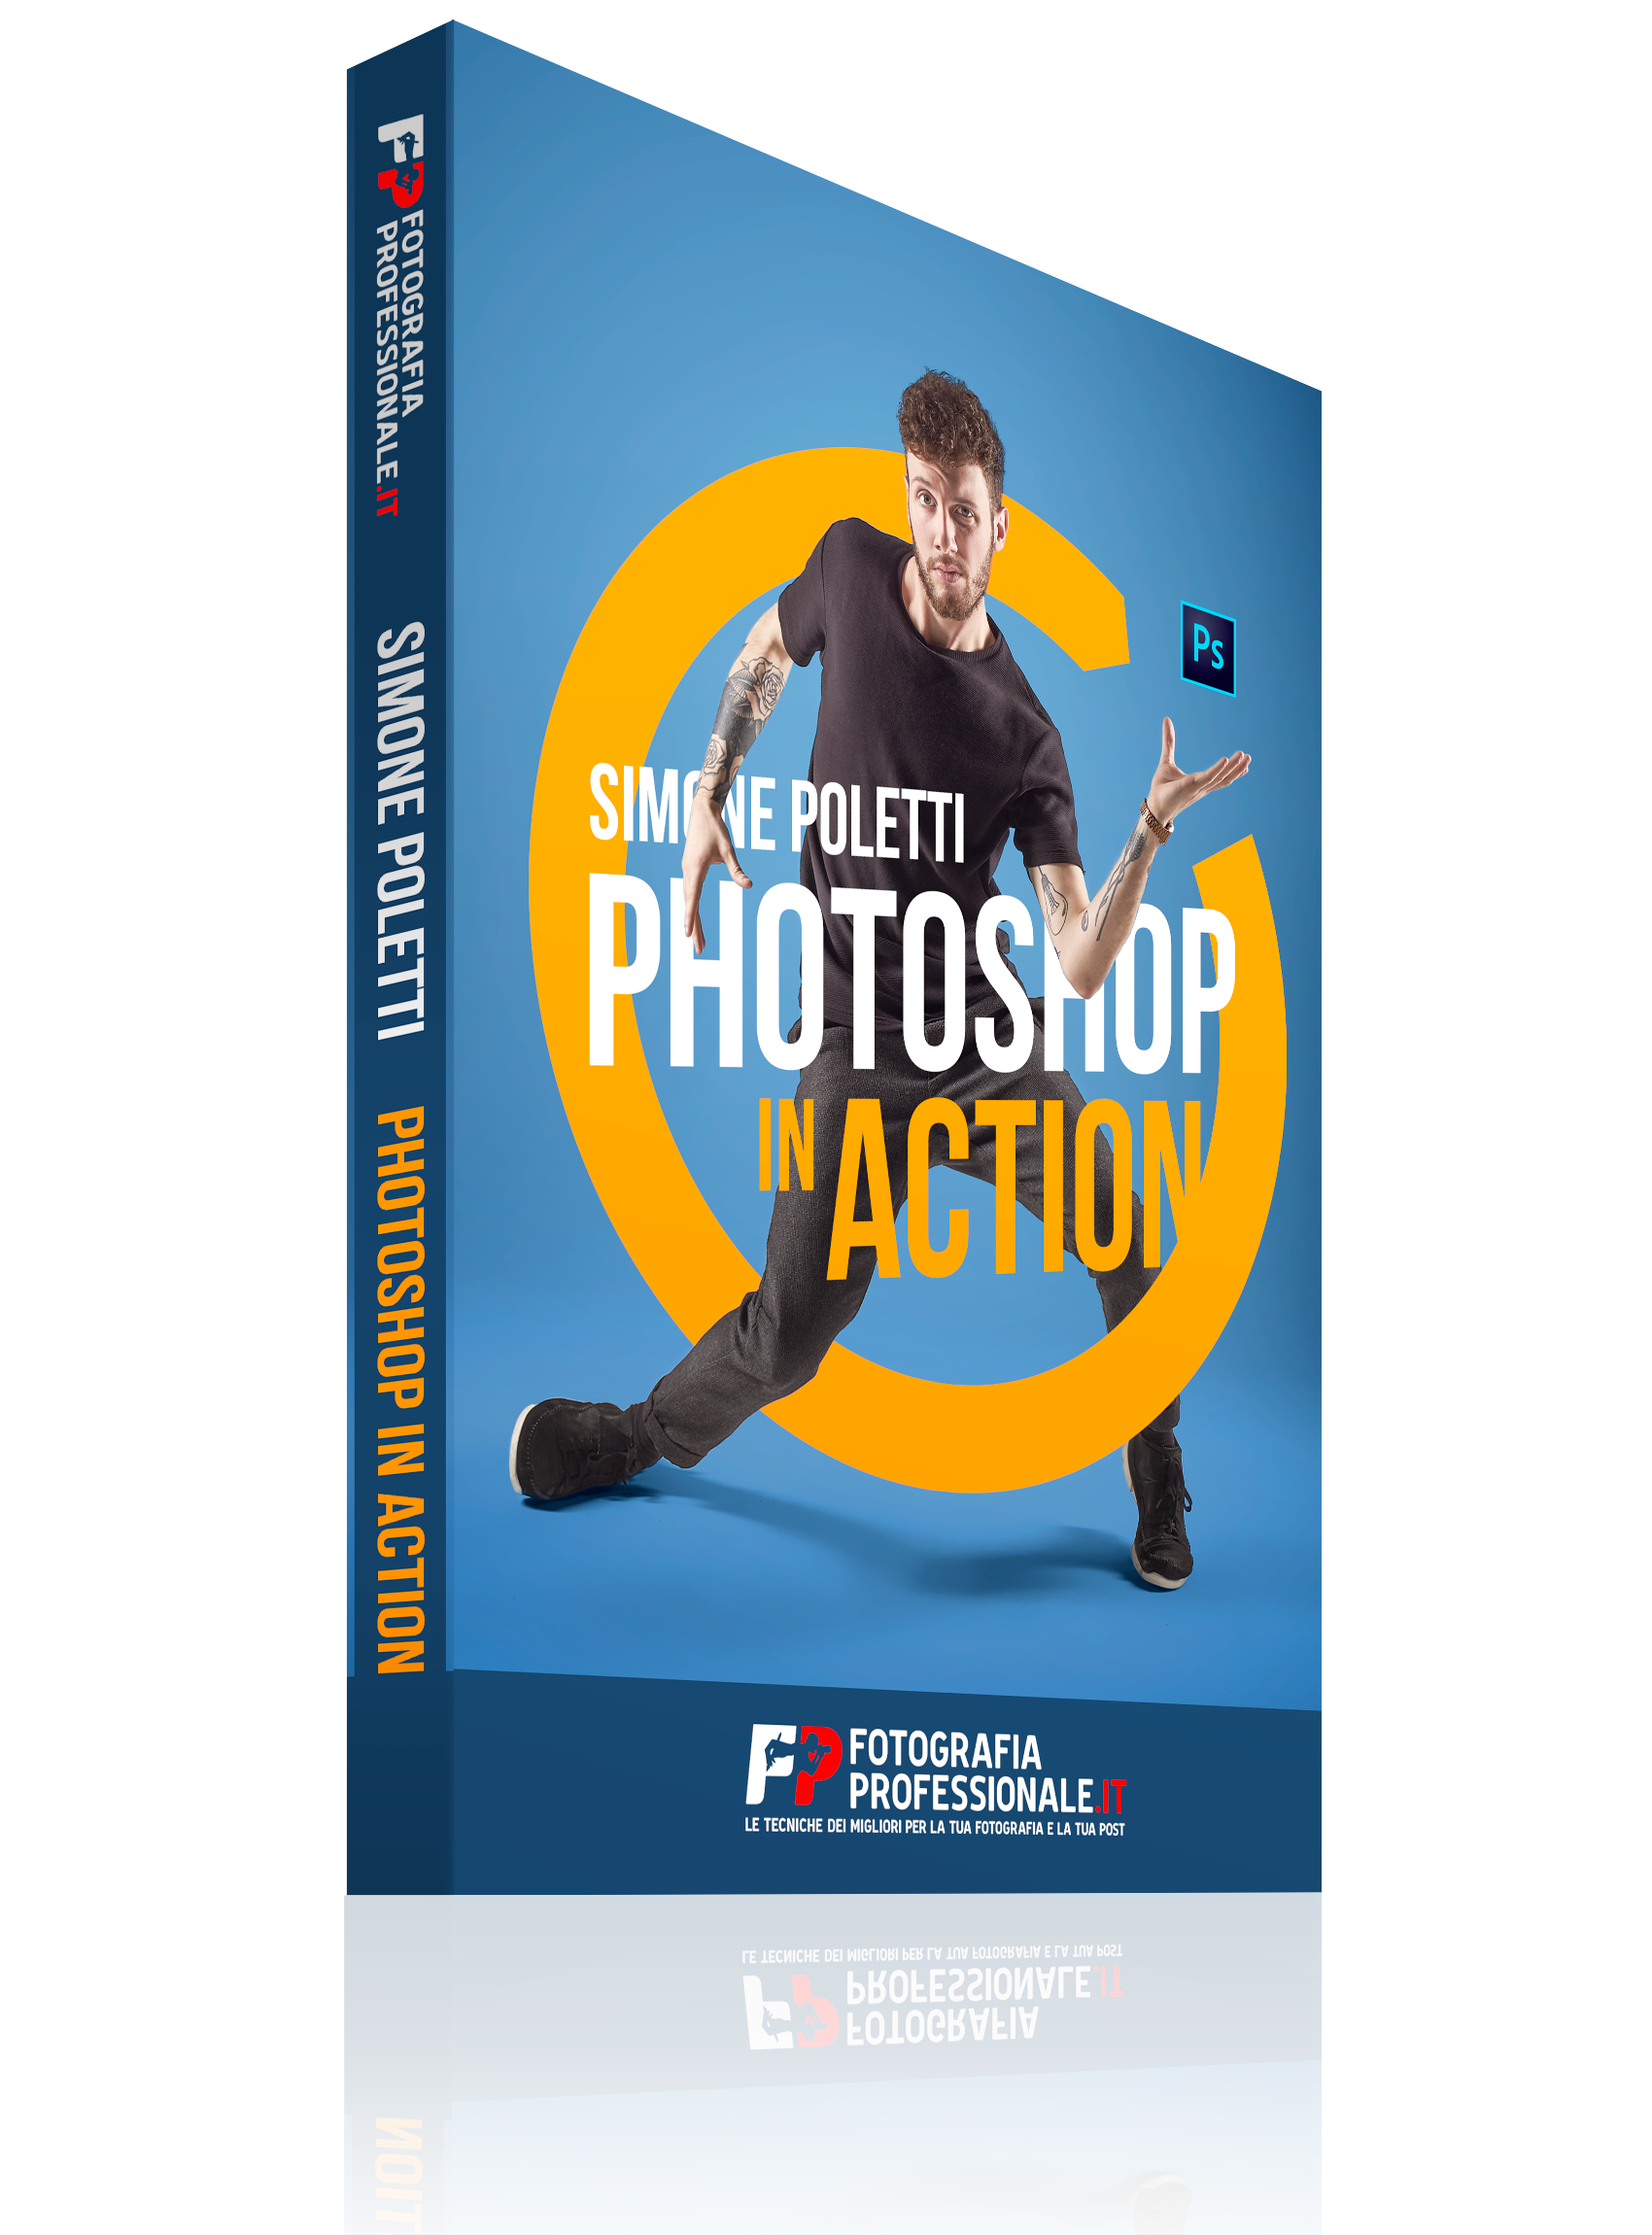 Photoshop in Action